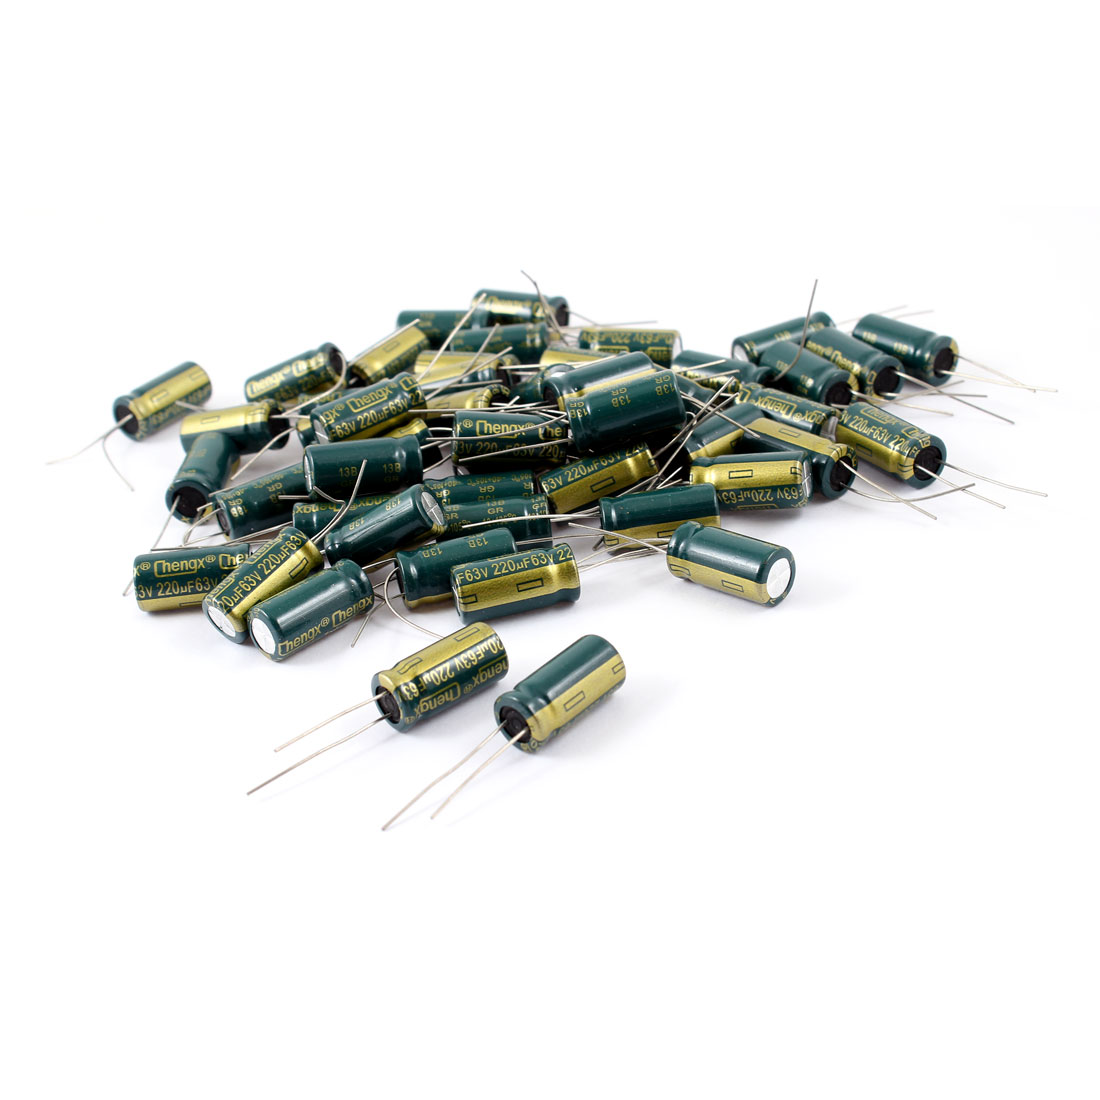 50 Pcs 220uF 63V Radial Aluminnum Electrolytic Capacitors 10mm x 20mm